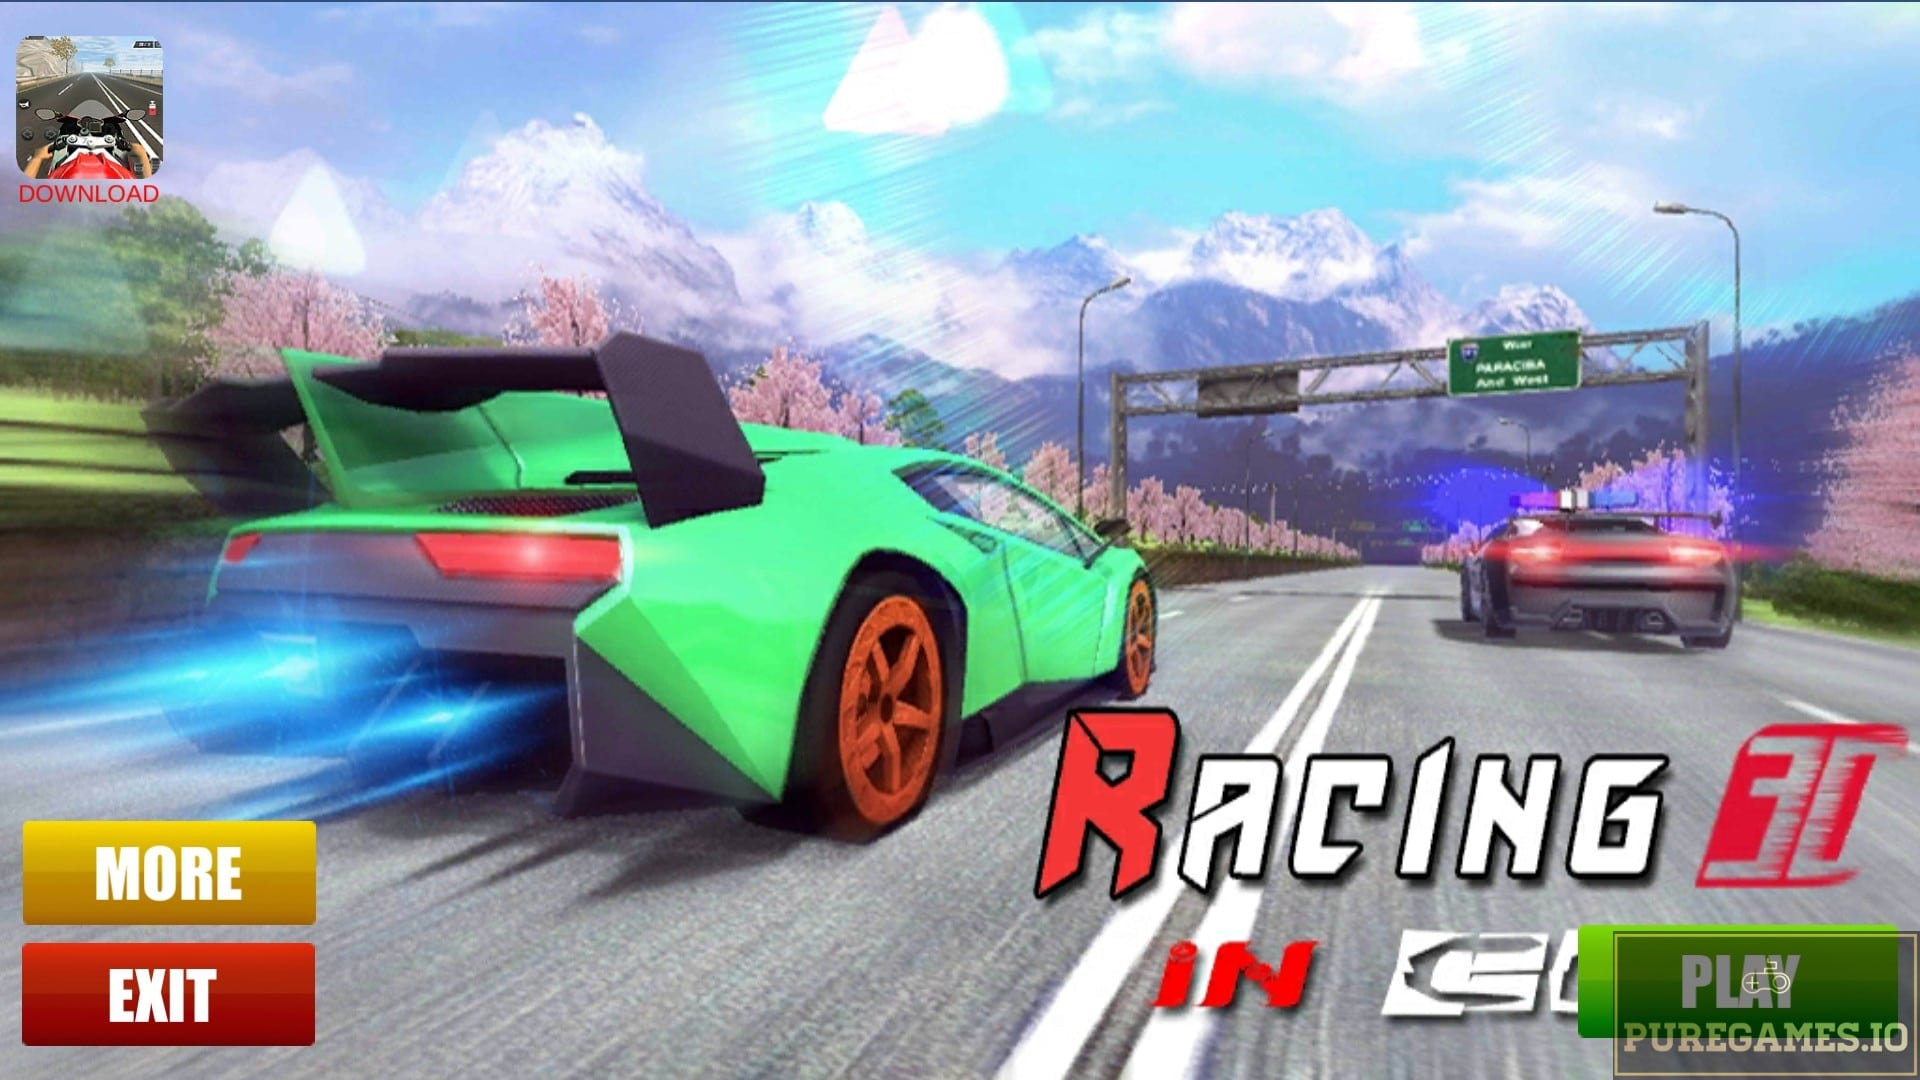 Download Racing In Car 3D APK - For Android 14